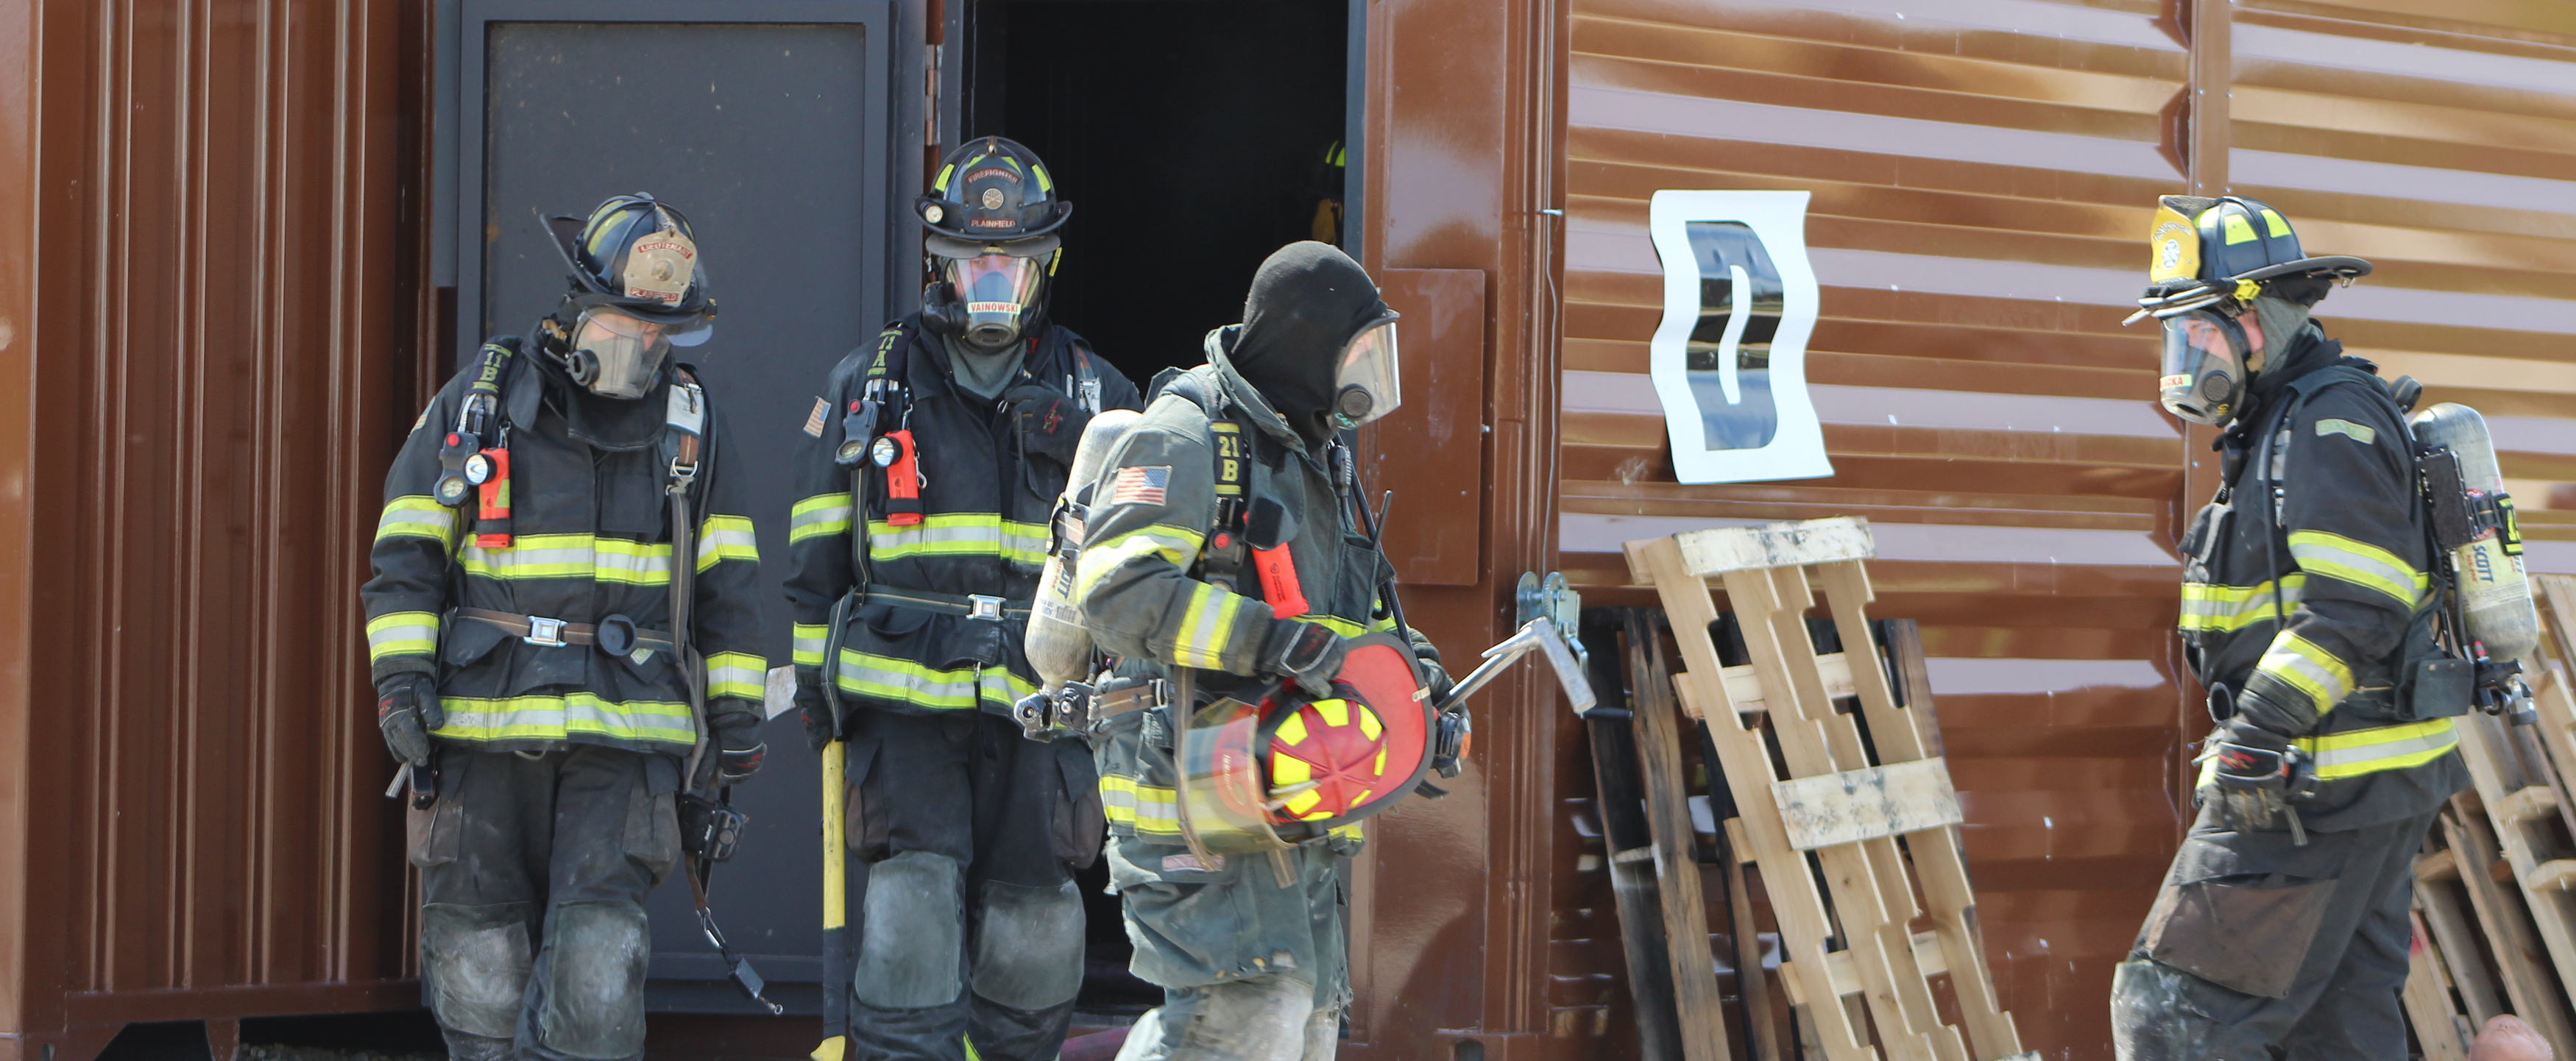 live fire training in training towers